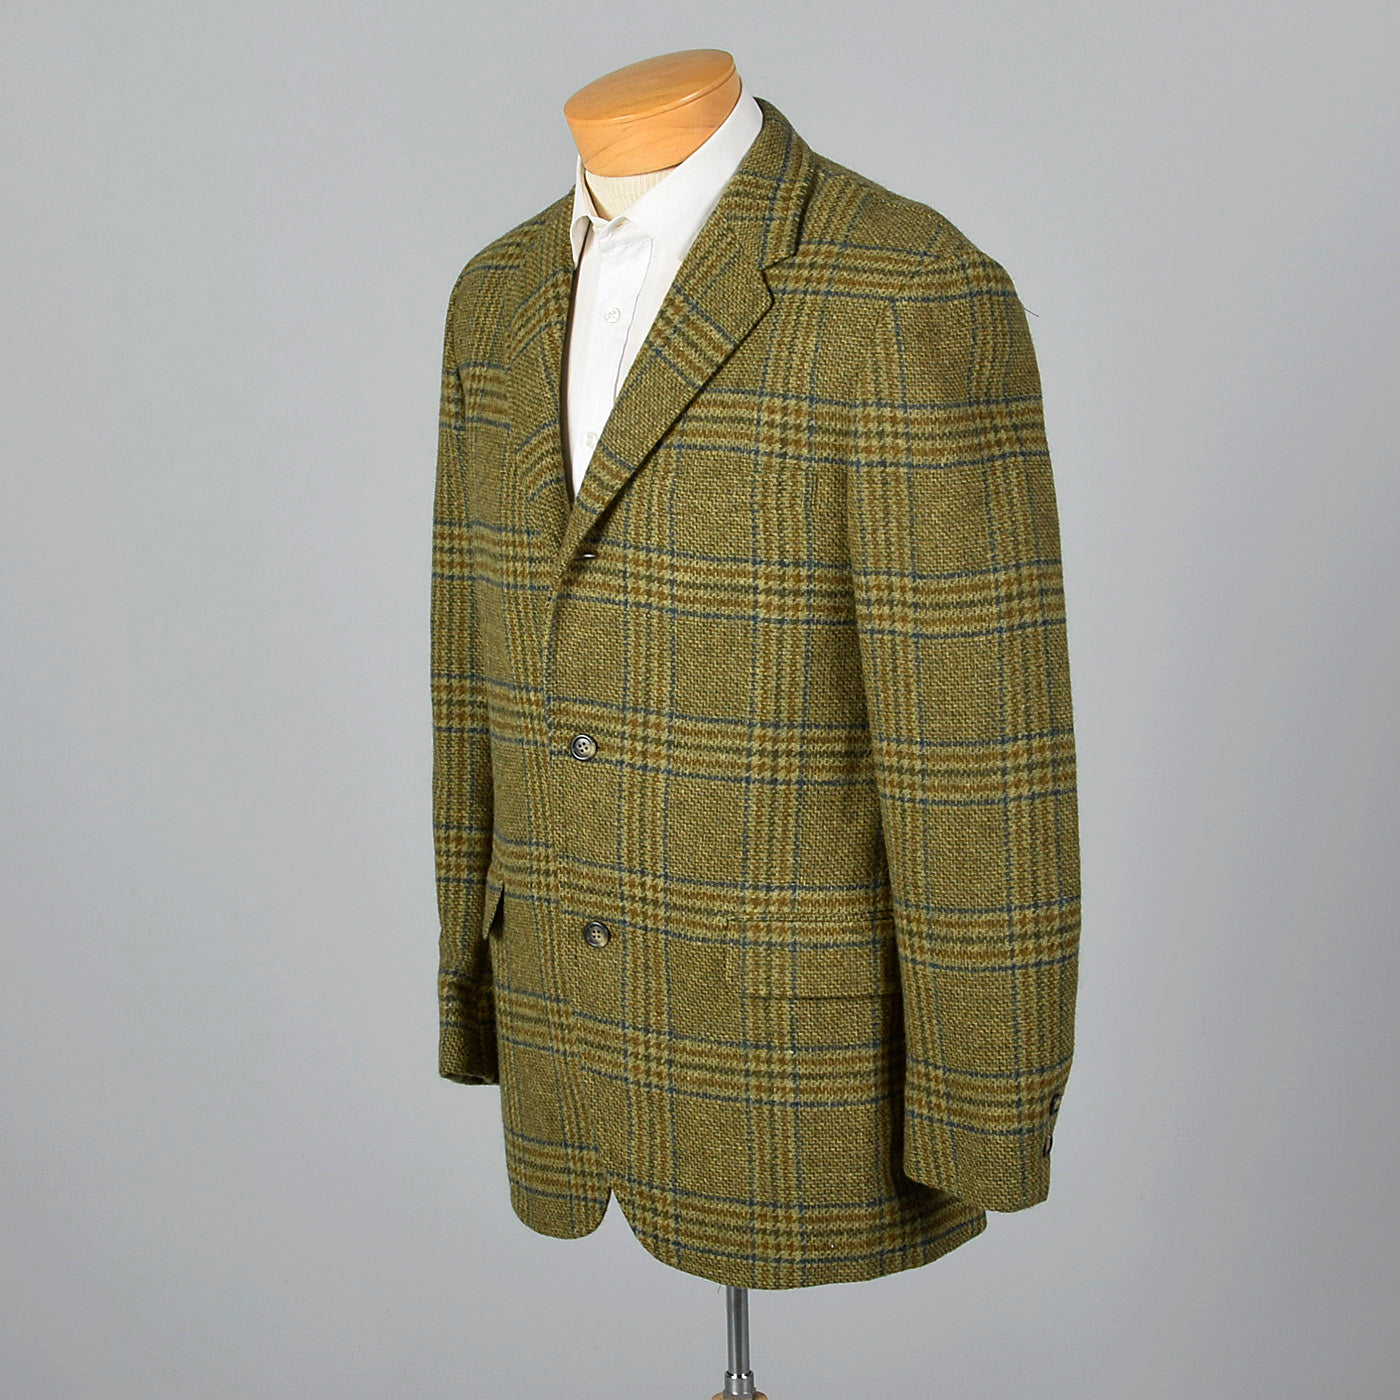 1960s Mens Green and Gold Plaid Jacket